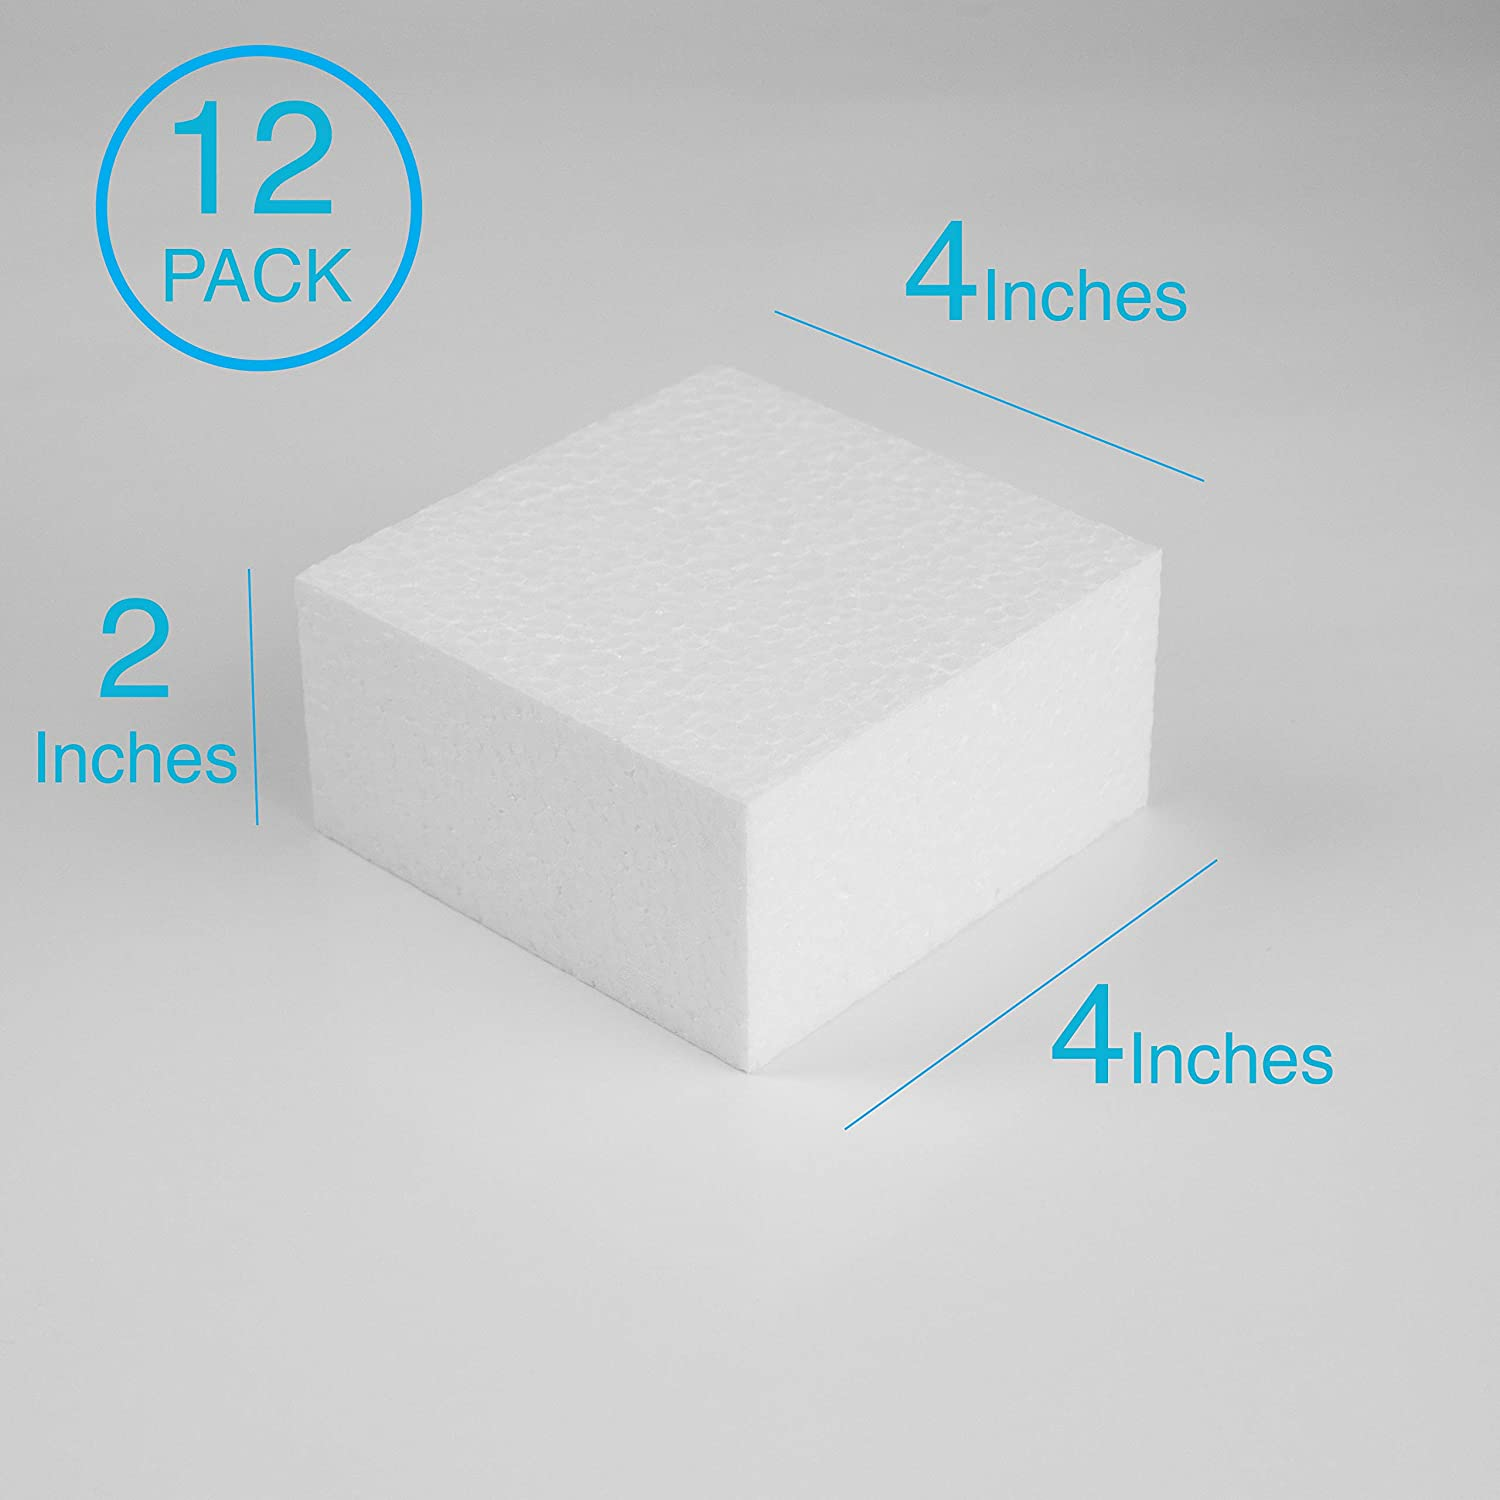 Art Projects and Floral Arrangements Silverlake Craft Foam Block Sculpting Blocks for DIY School and Kids Art Projects Modeling 12 Pack of 4x4x2 inch EPS Polystyrene Square Blocks for Crafting